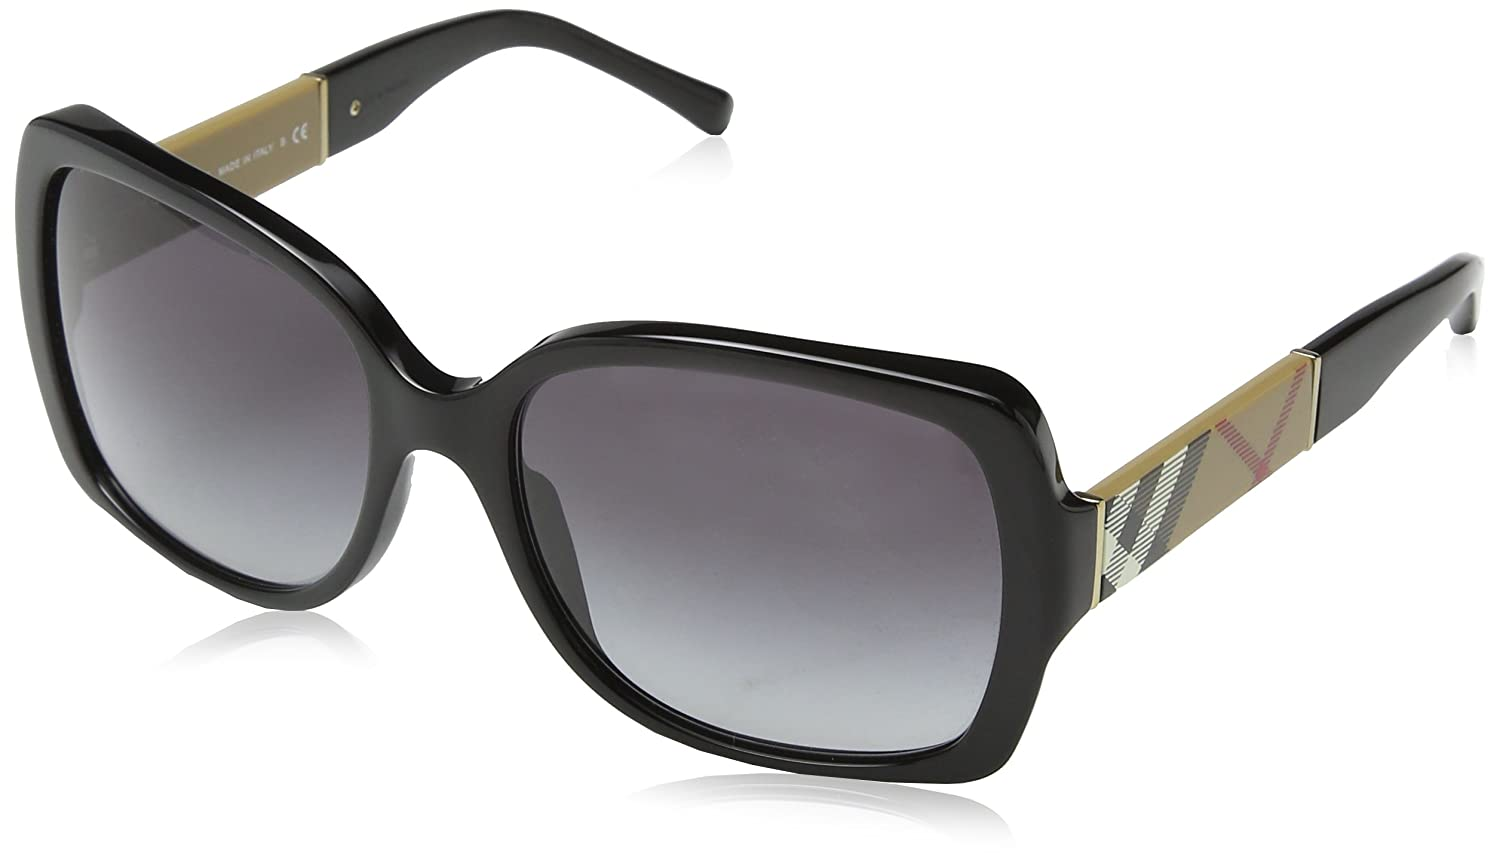 Burberry 0BE4160 34338G 58 Gafas de sol, Negro (Black/Grey Gradient), Mujer